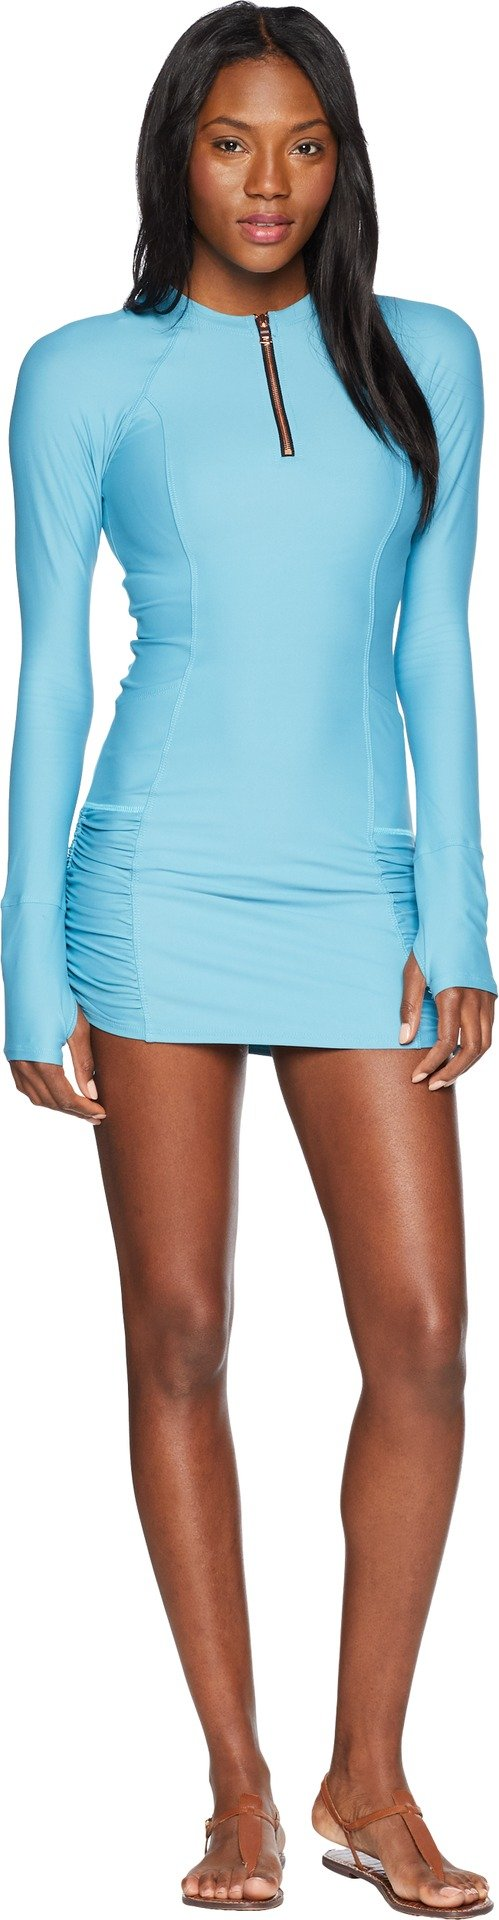 Next Women's Feeling Fine Hydrate Zip Rashguard Dress, Feeling Fine Ocean, Small